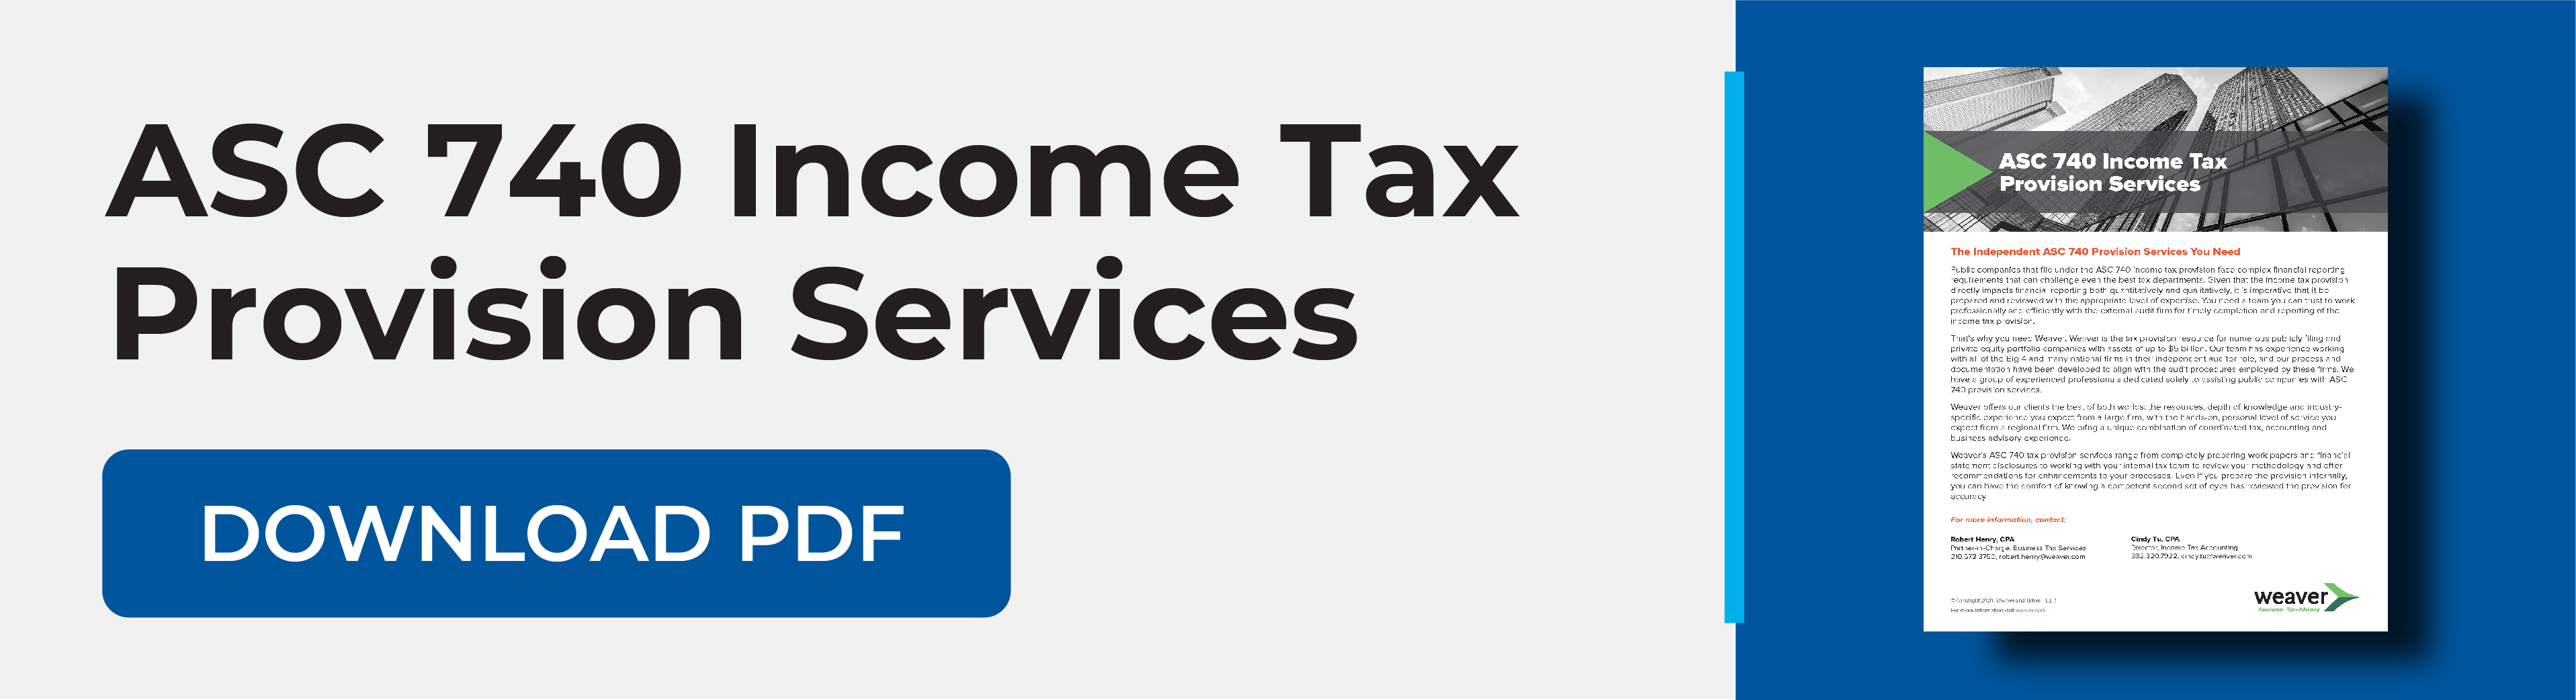 ASC 740 Income Tax Preparation Download